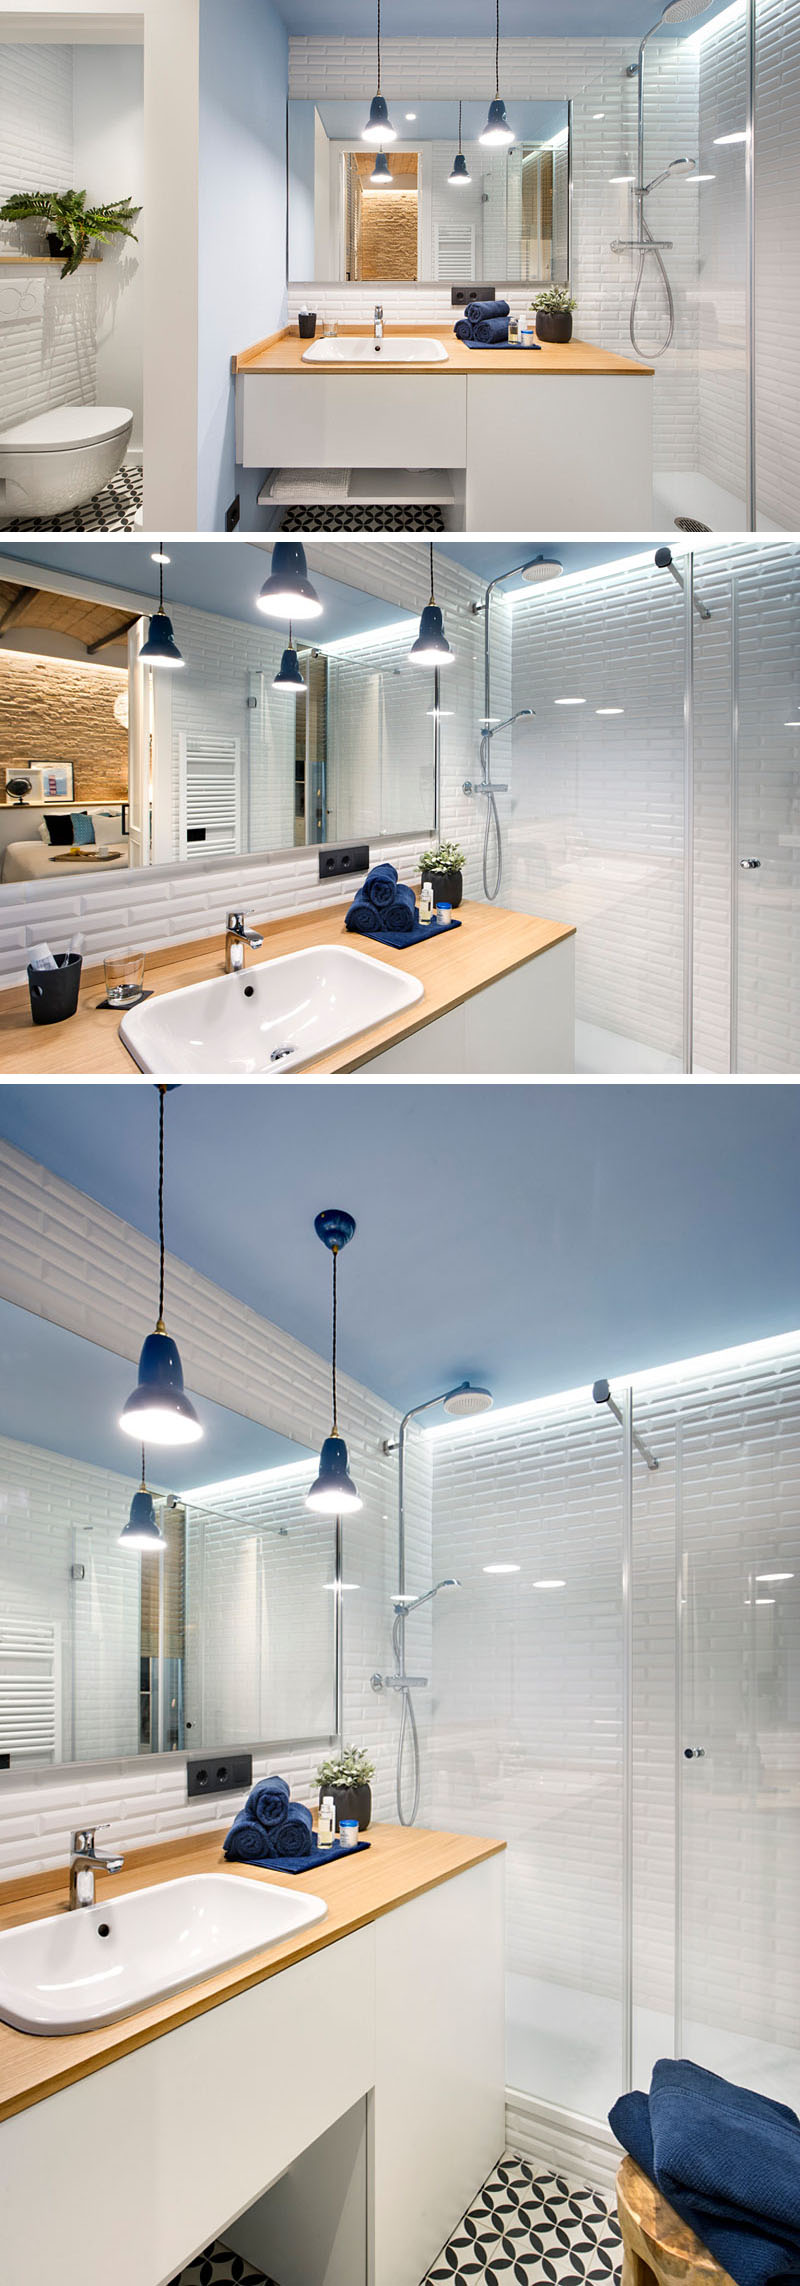 small-modern-white-and-blue-bathroom-210317-339-08